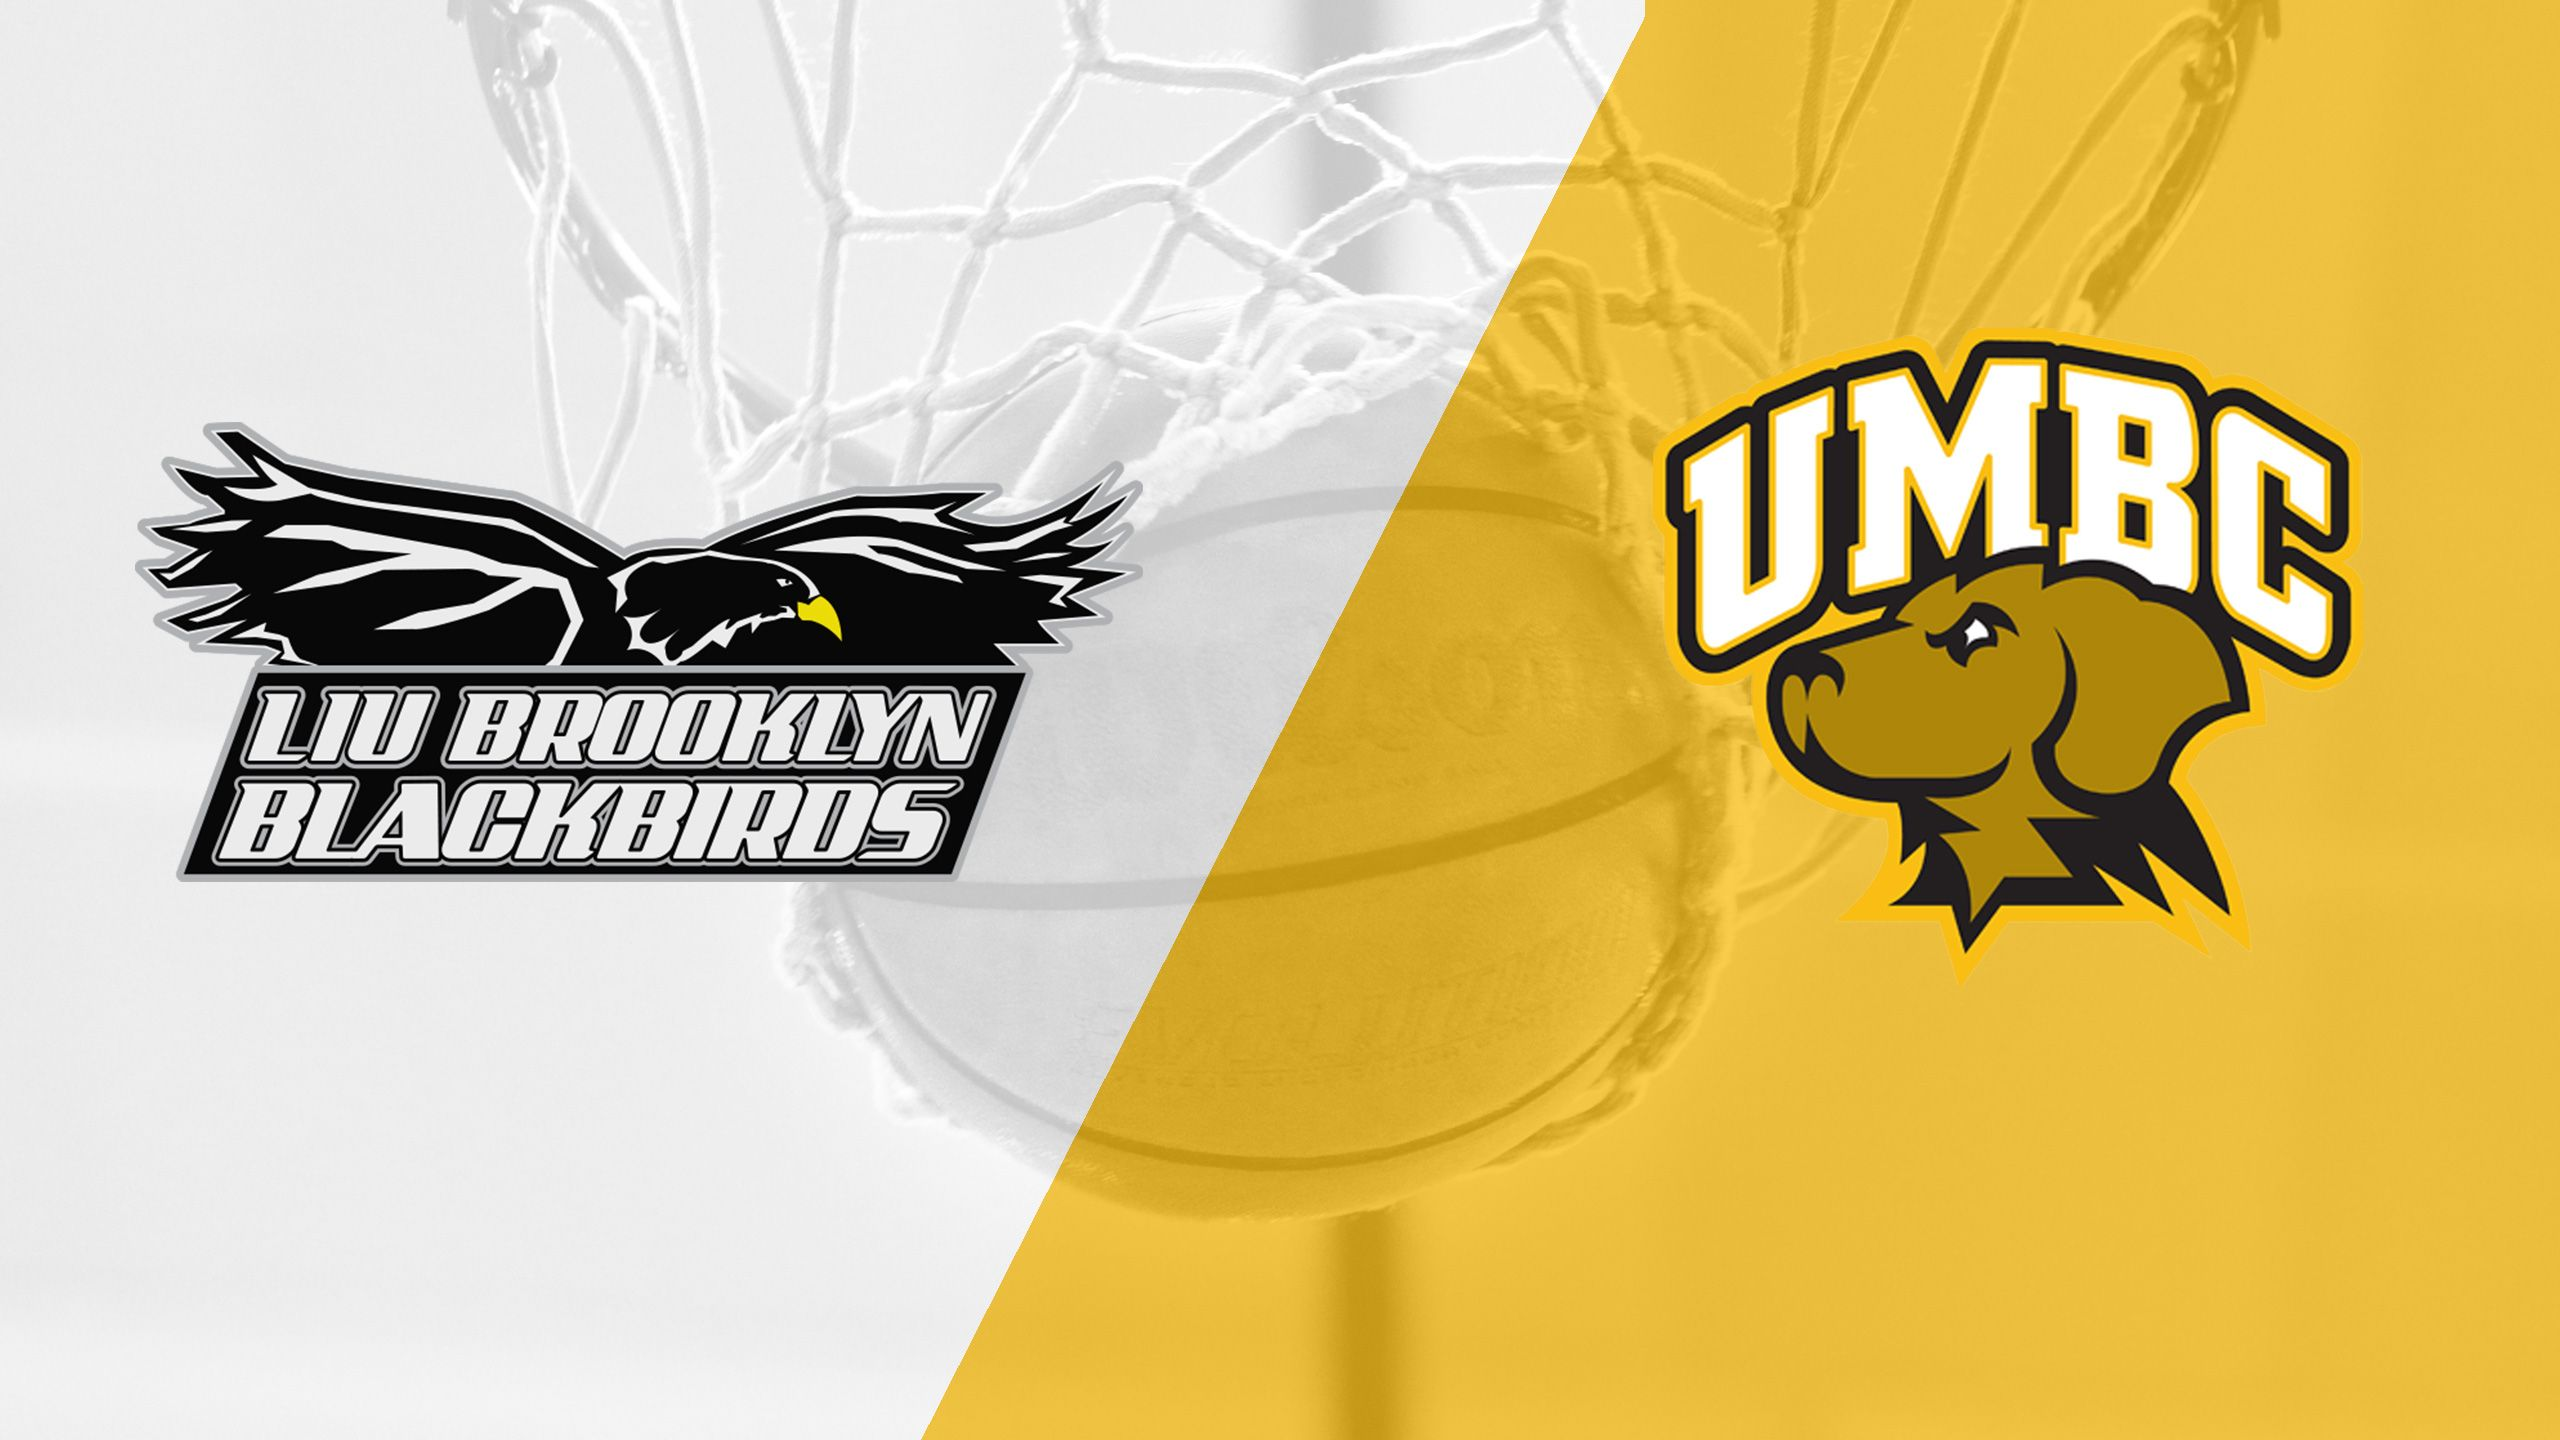 LIU Brooklyn vs. UMBC (W Basketball)